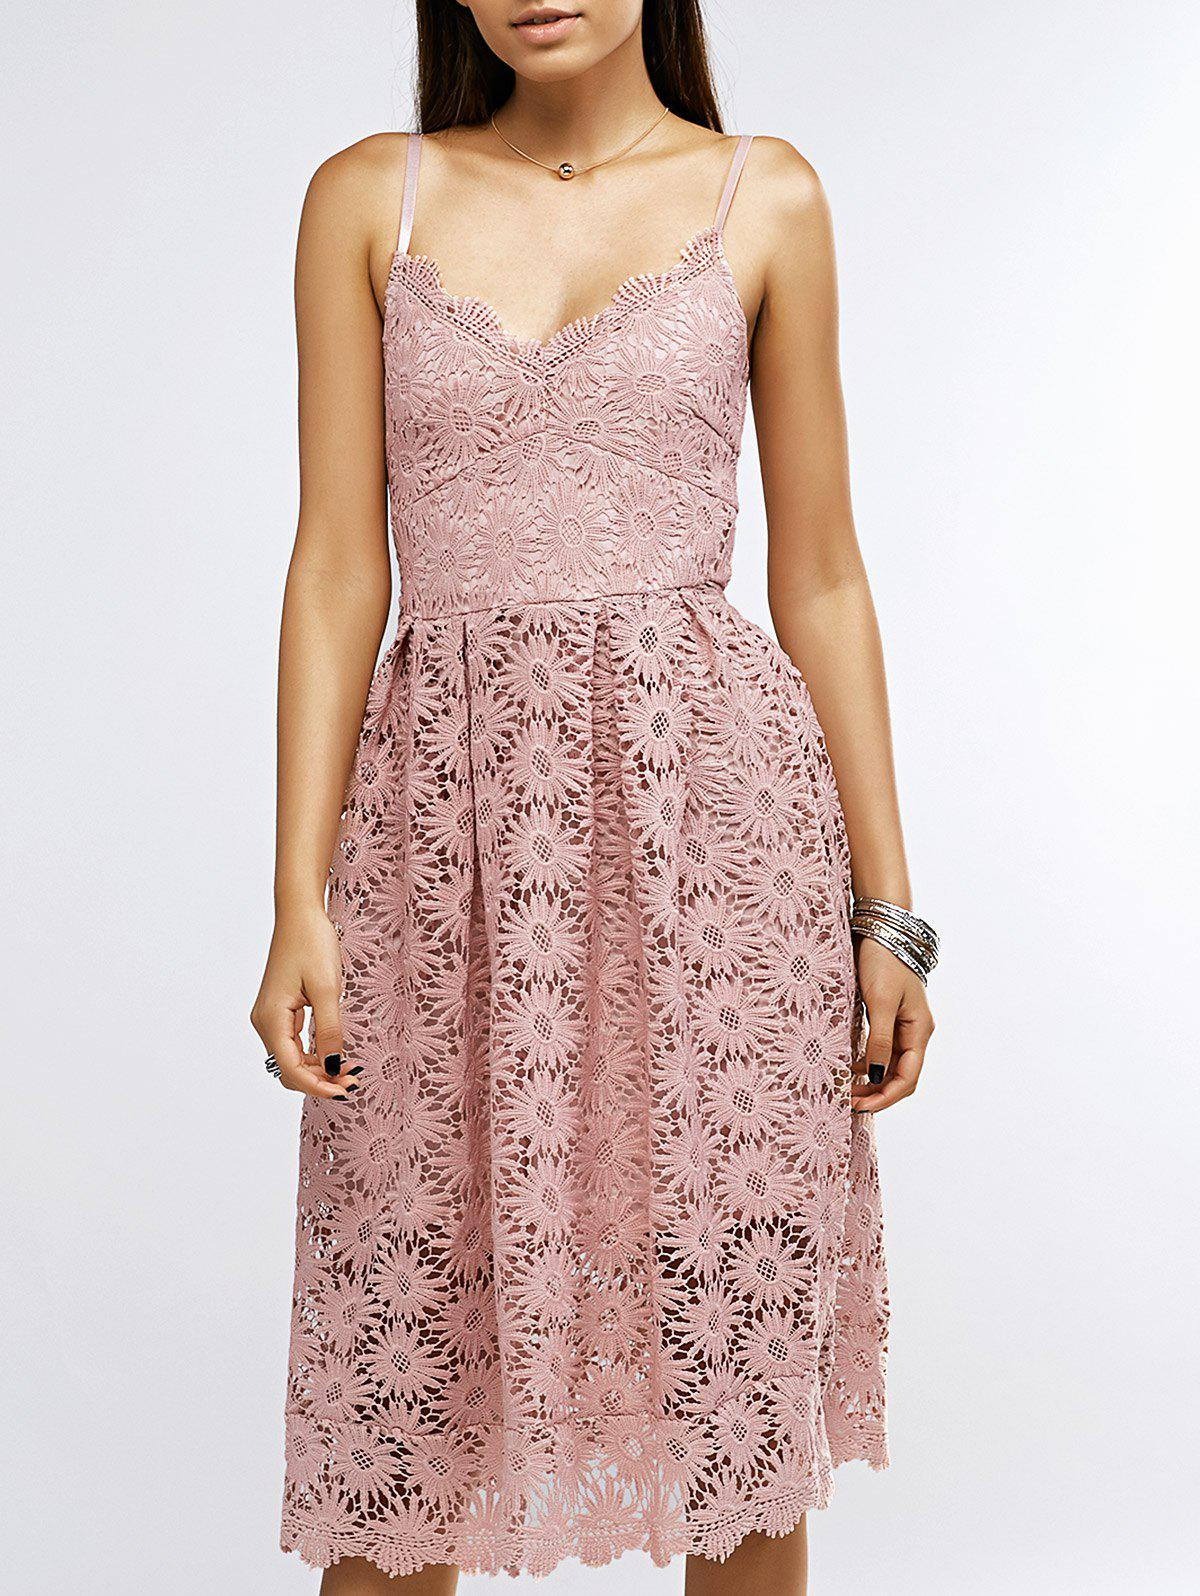 Women's Spaghetti Strap High Waisted Lace Midi Dress - PINK L